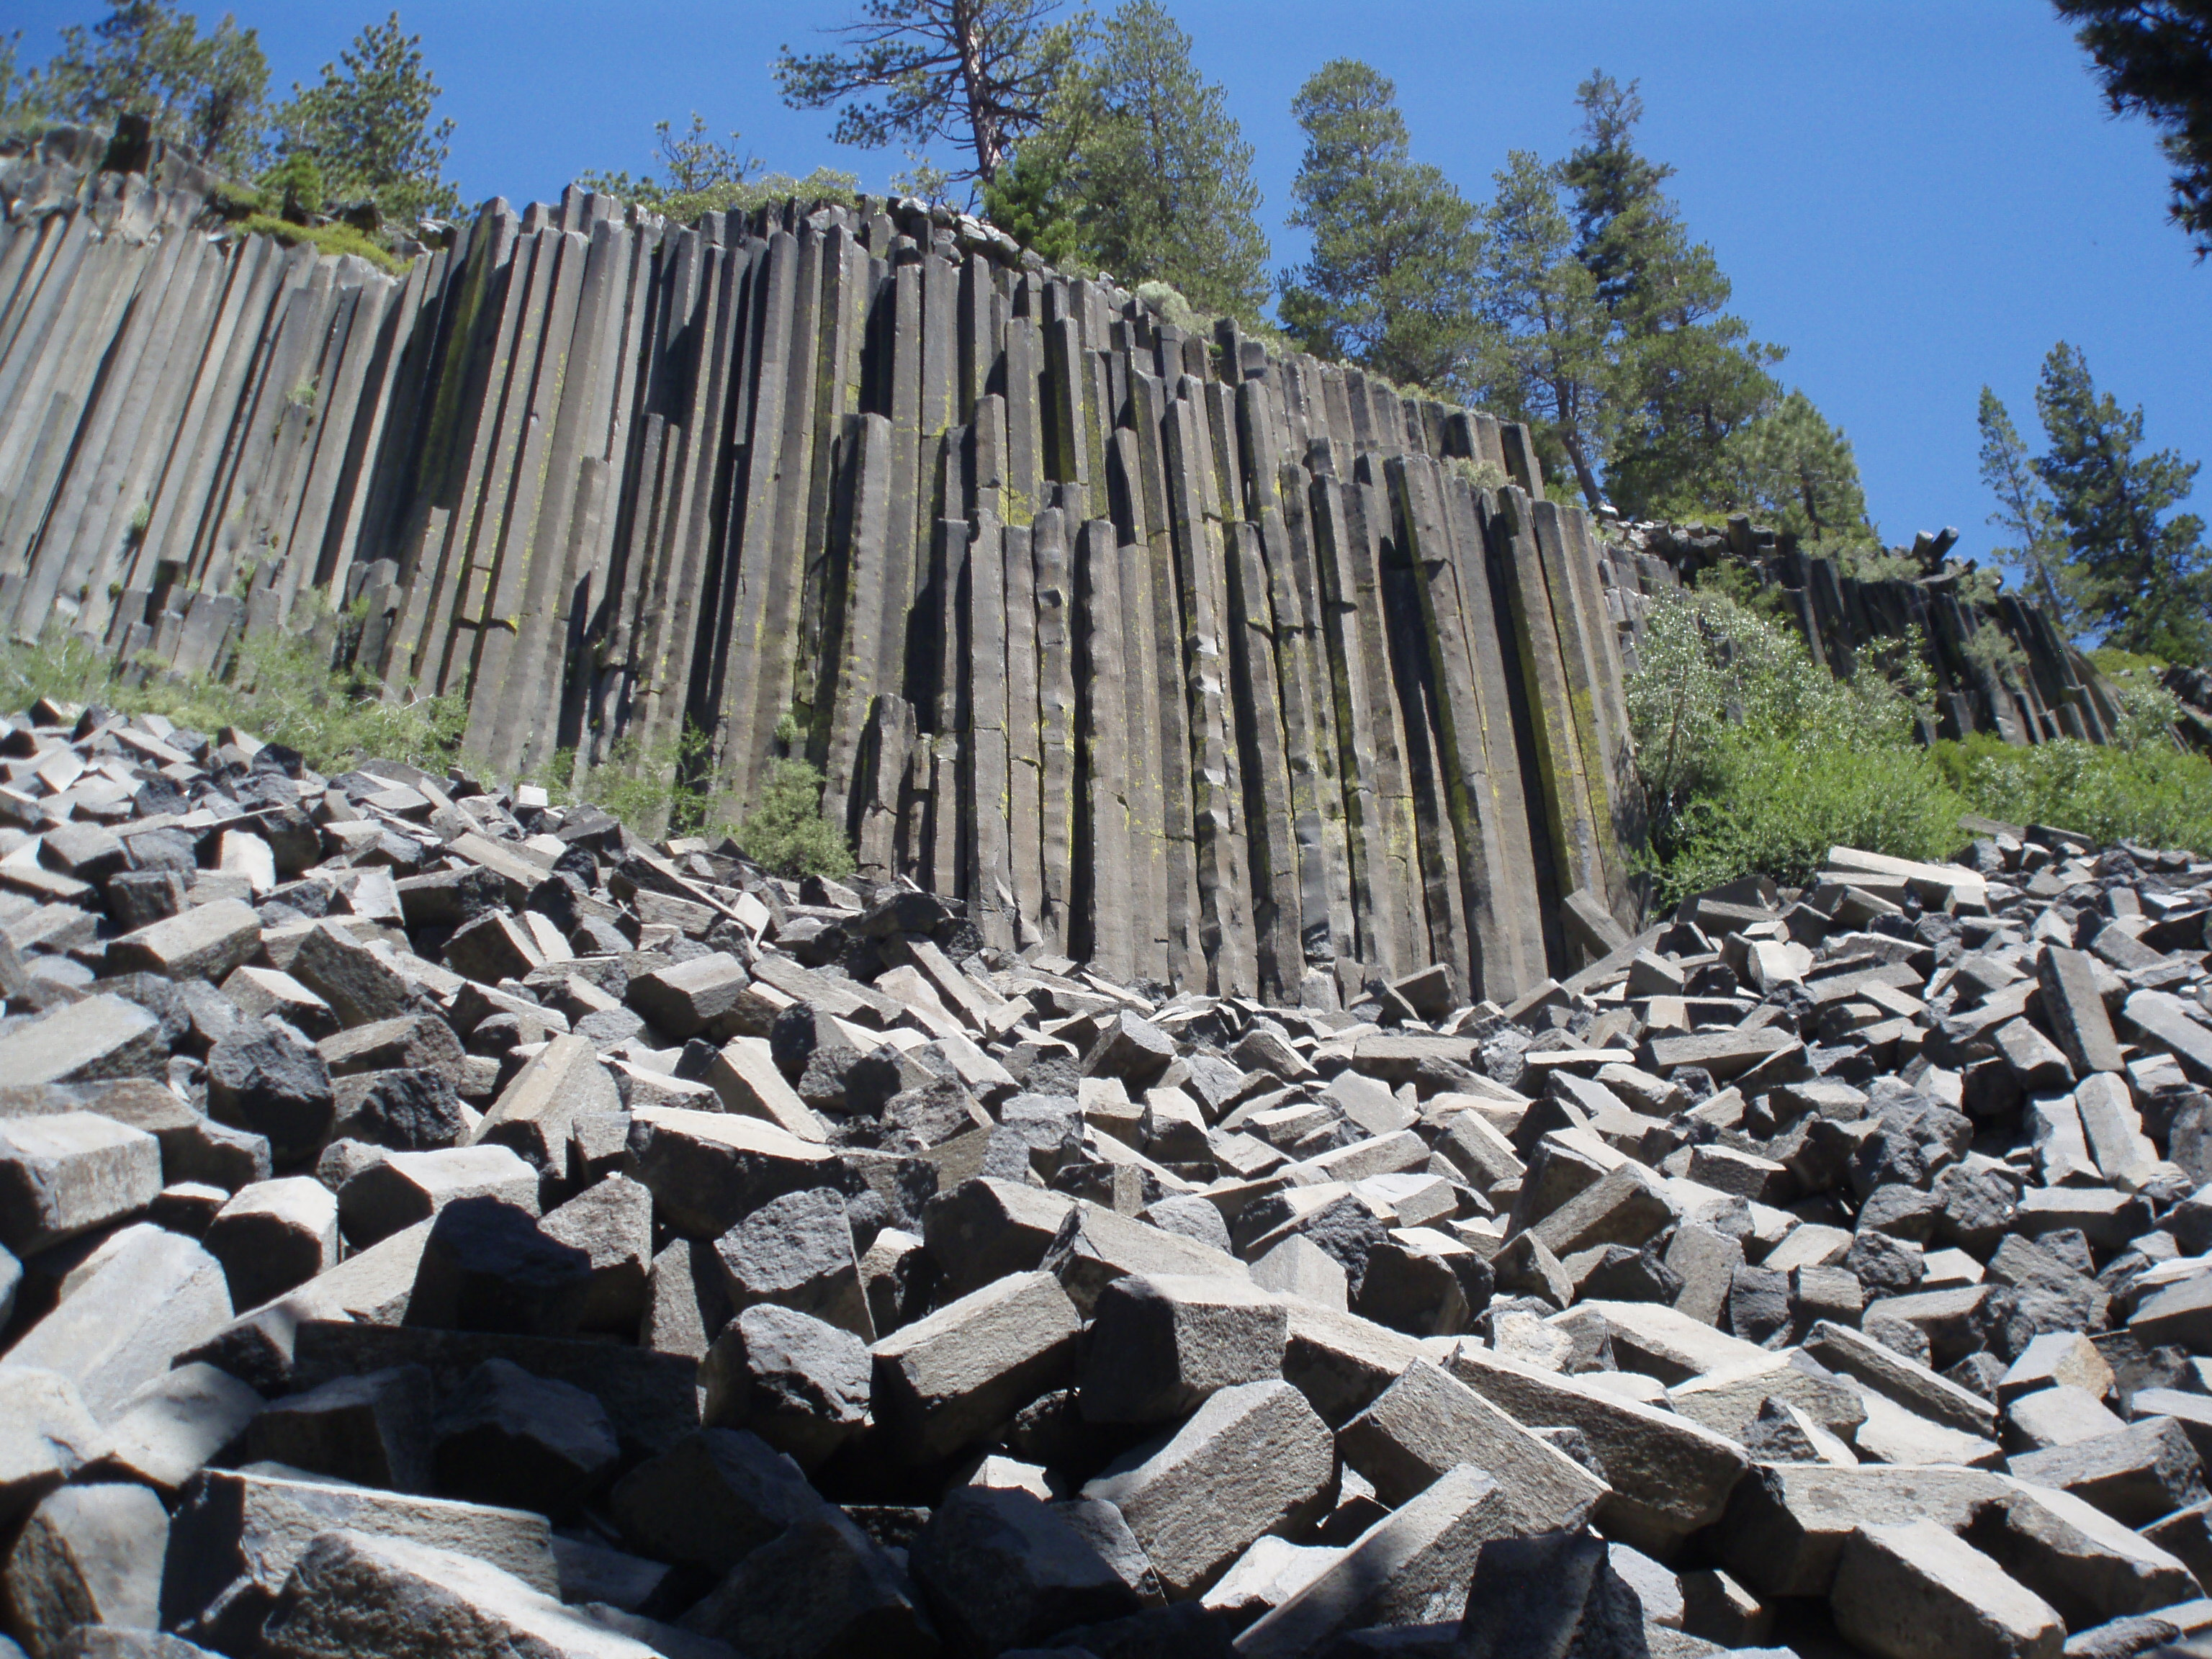 an essay on the camp devils postpile Once off the bus, the hike out to devil's postpile itself was short and easy the postpile is a curious array of volcanic columns that, upon cooling, formed into regular, hexagonal basalt posts jutting out of the earth about 60 feet into the sky.